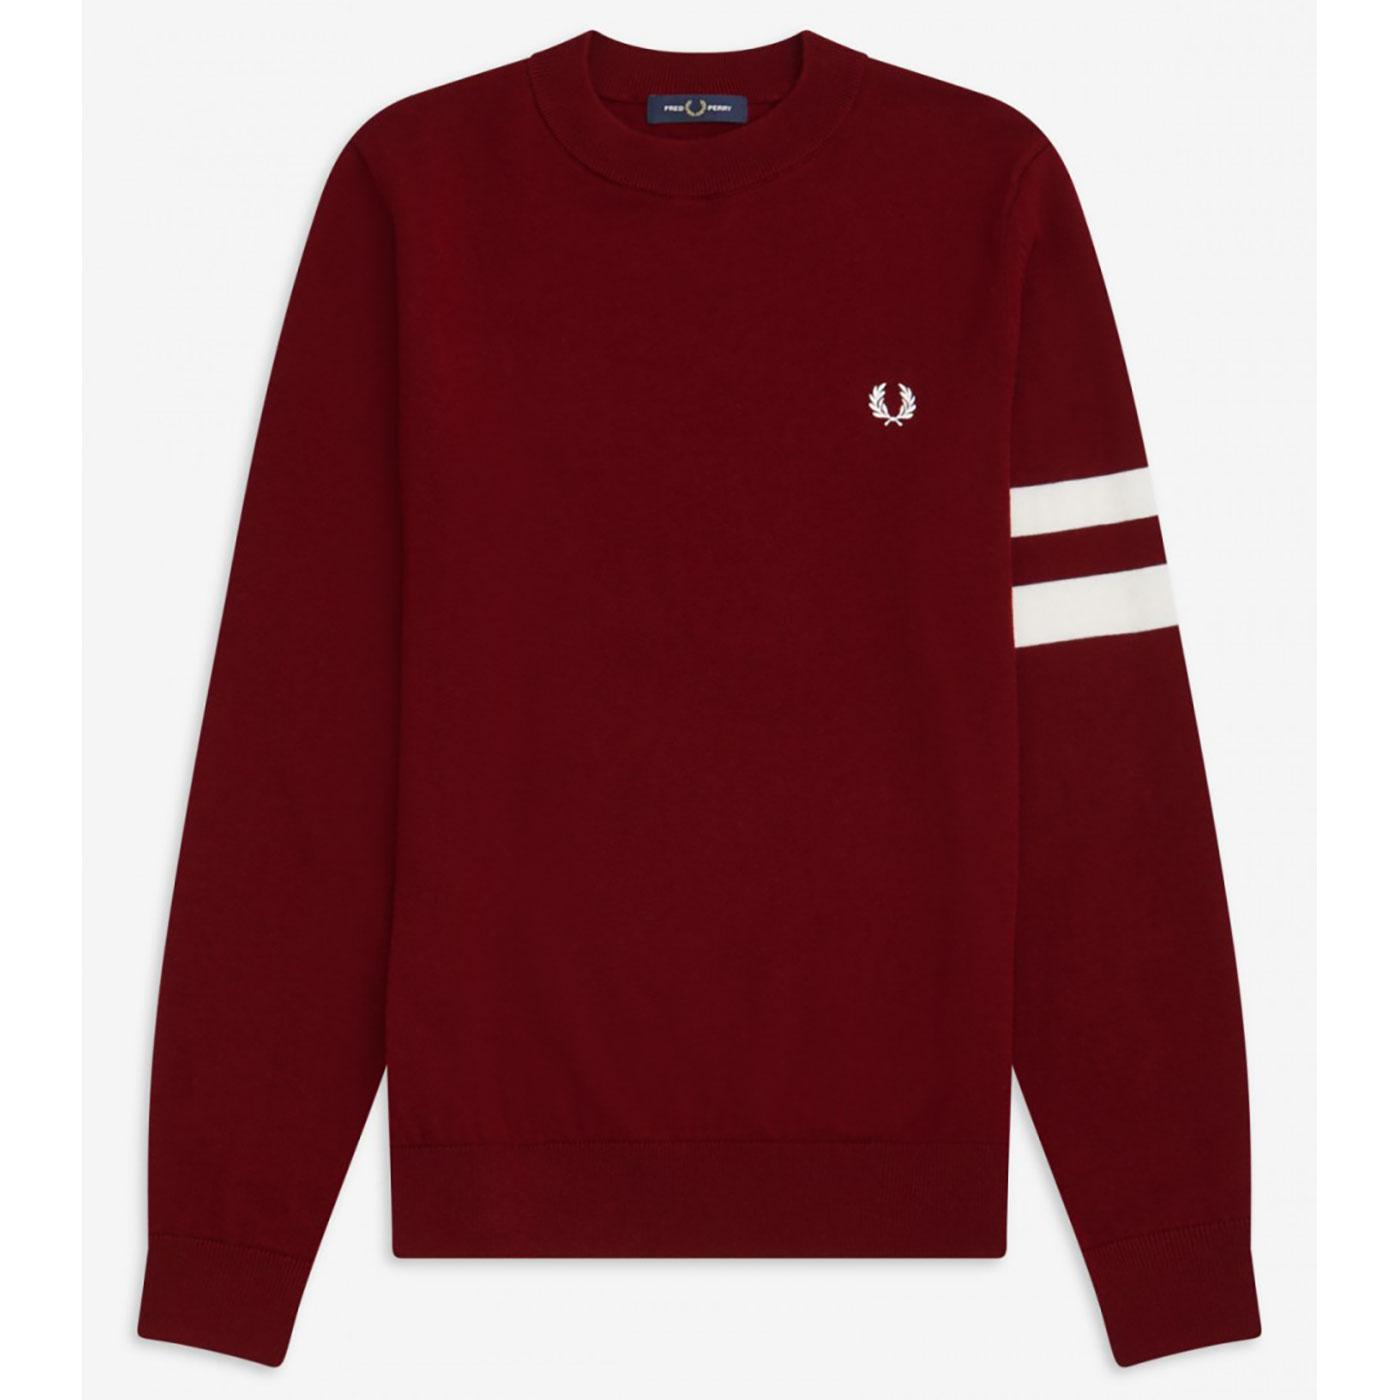 FRED PERRY Retro Mod Tipped Sleeve Jumper DR